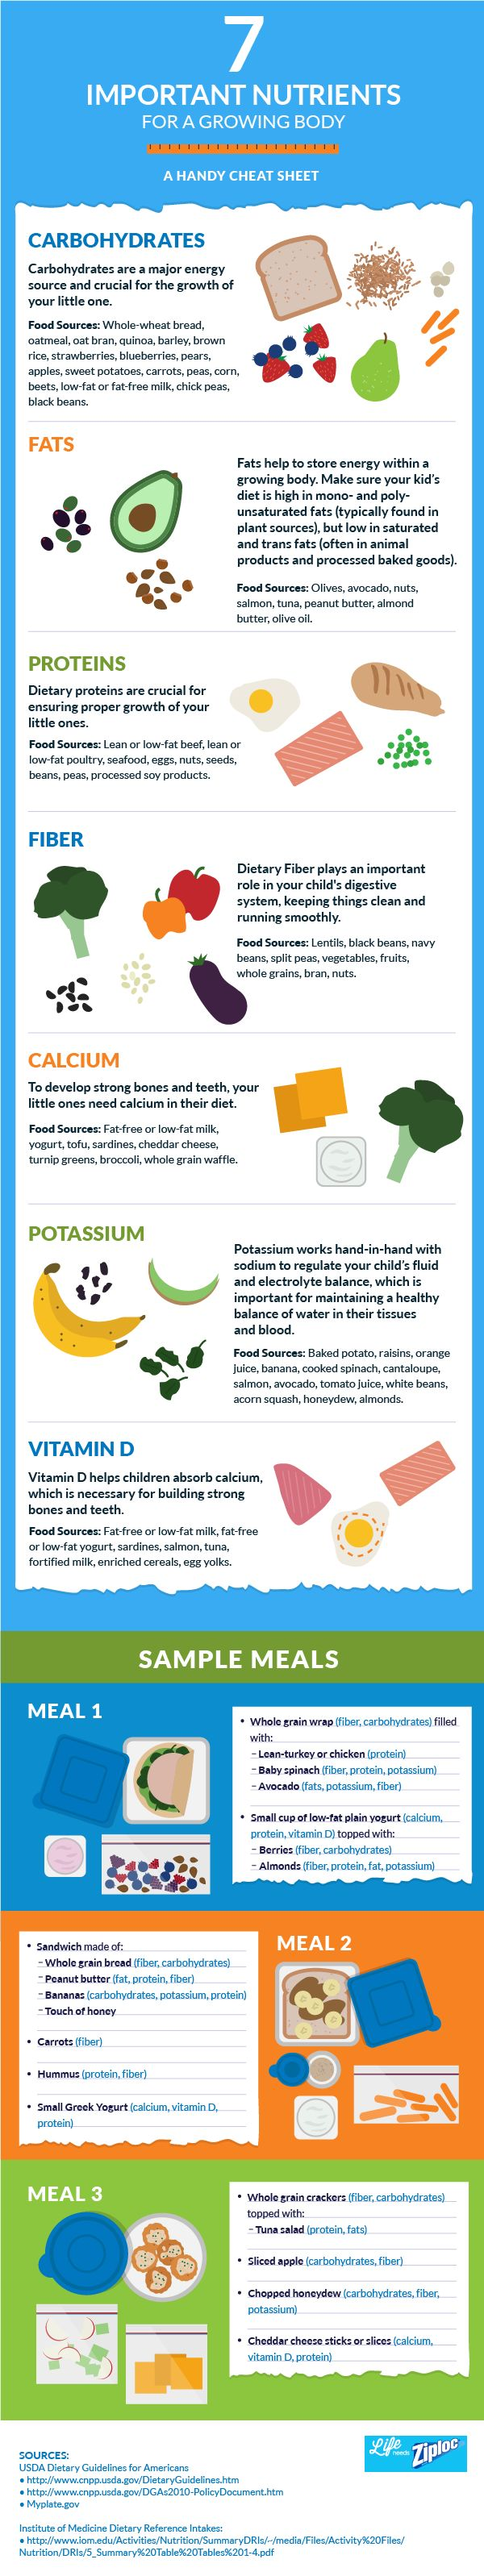 7 Important Nutrients For Growing Bodies: A Handy Cheat Sheet